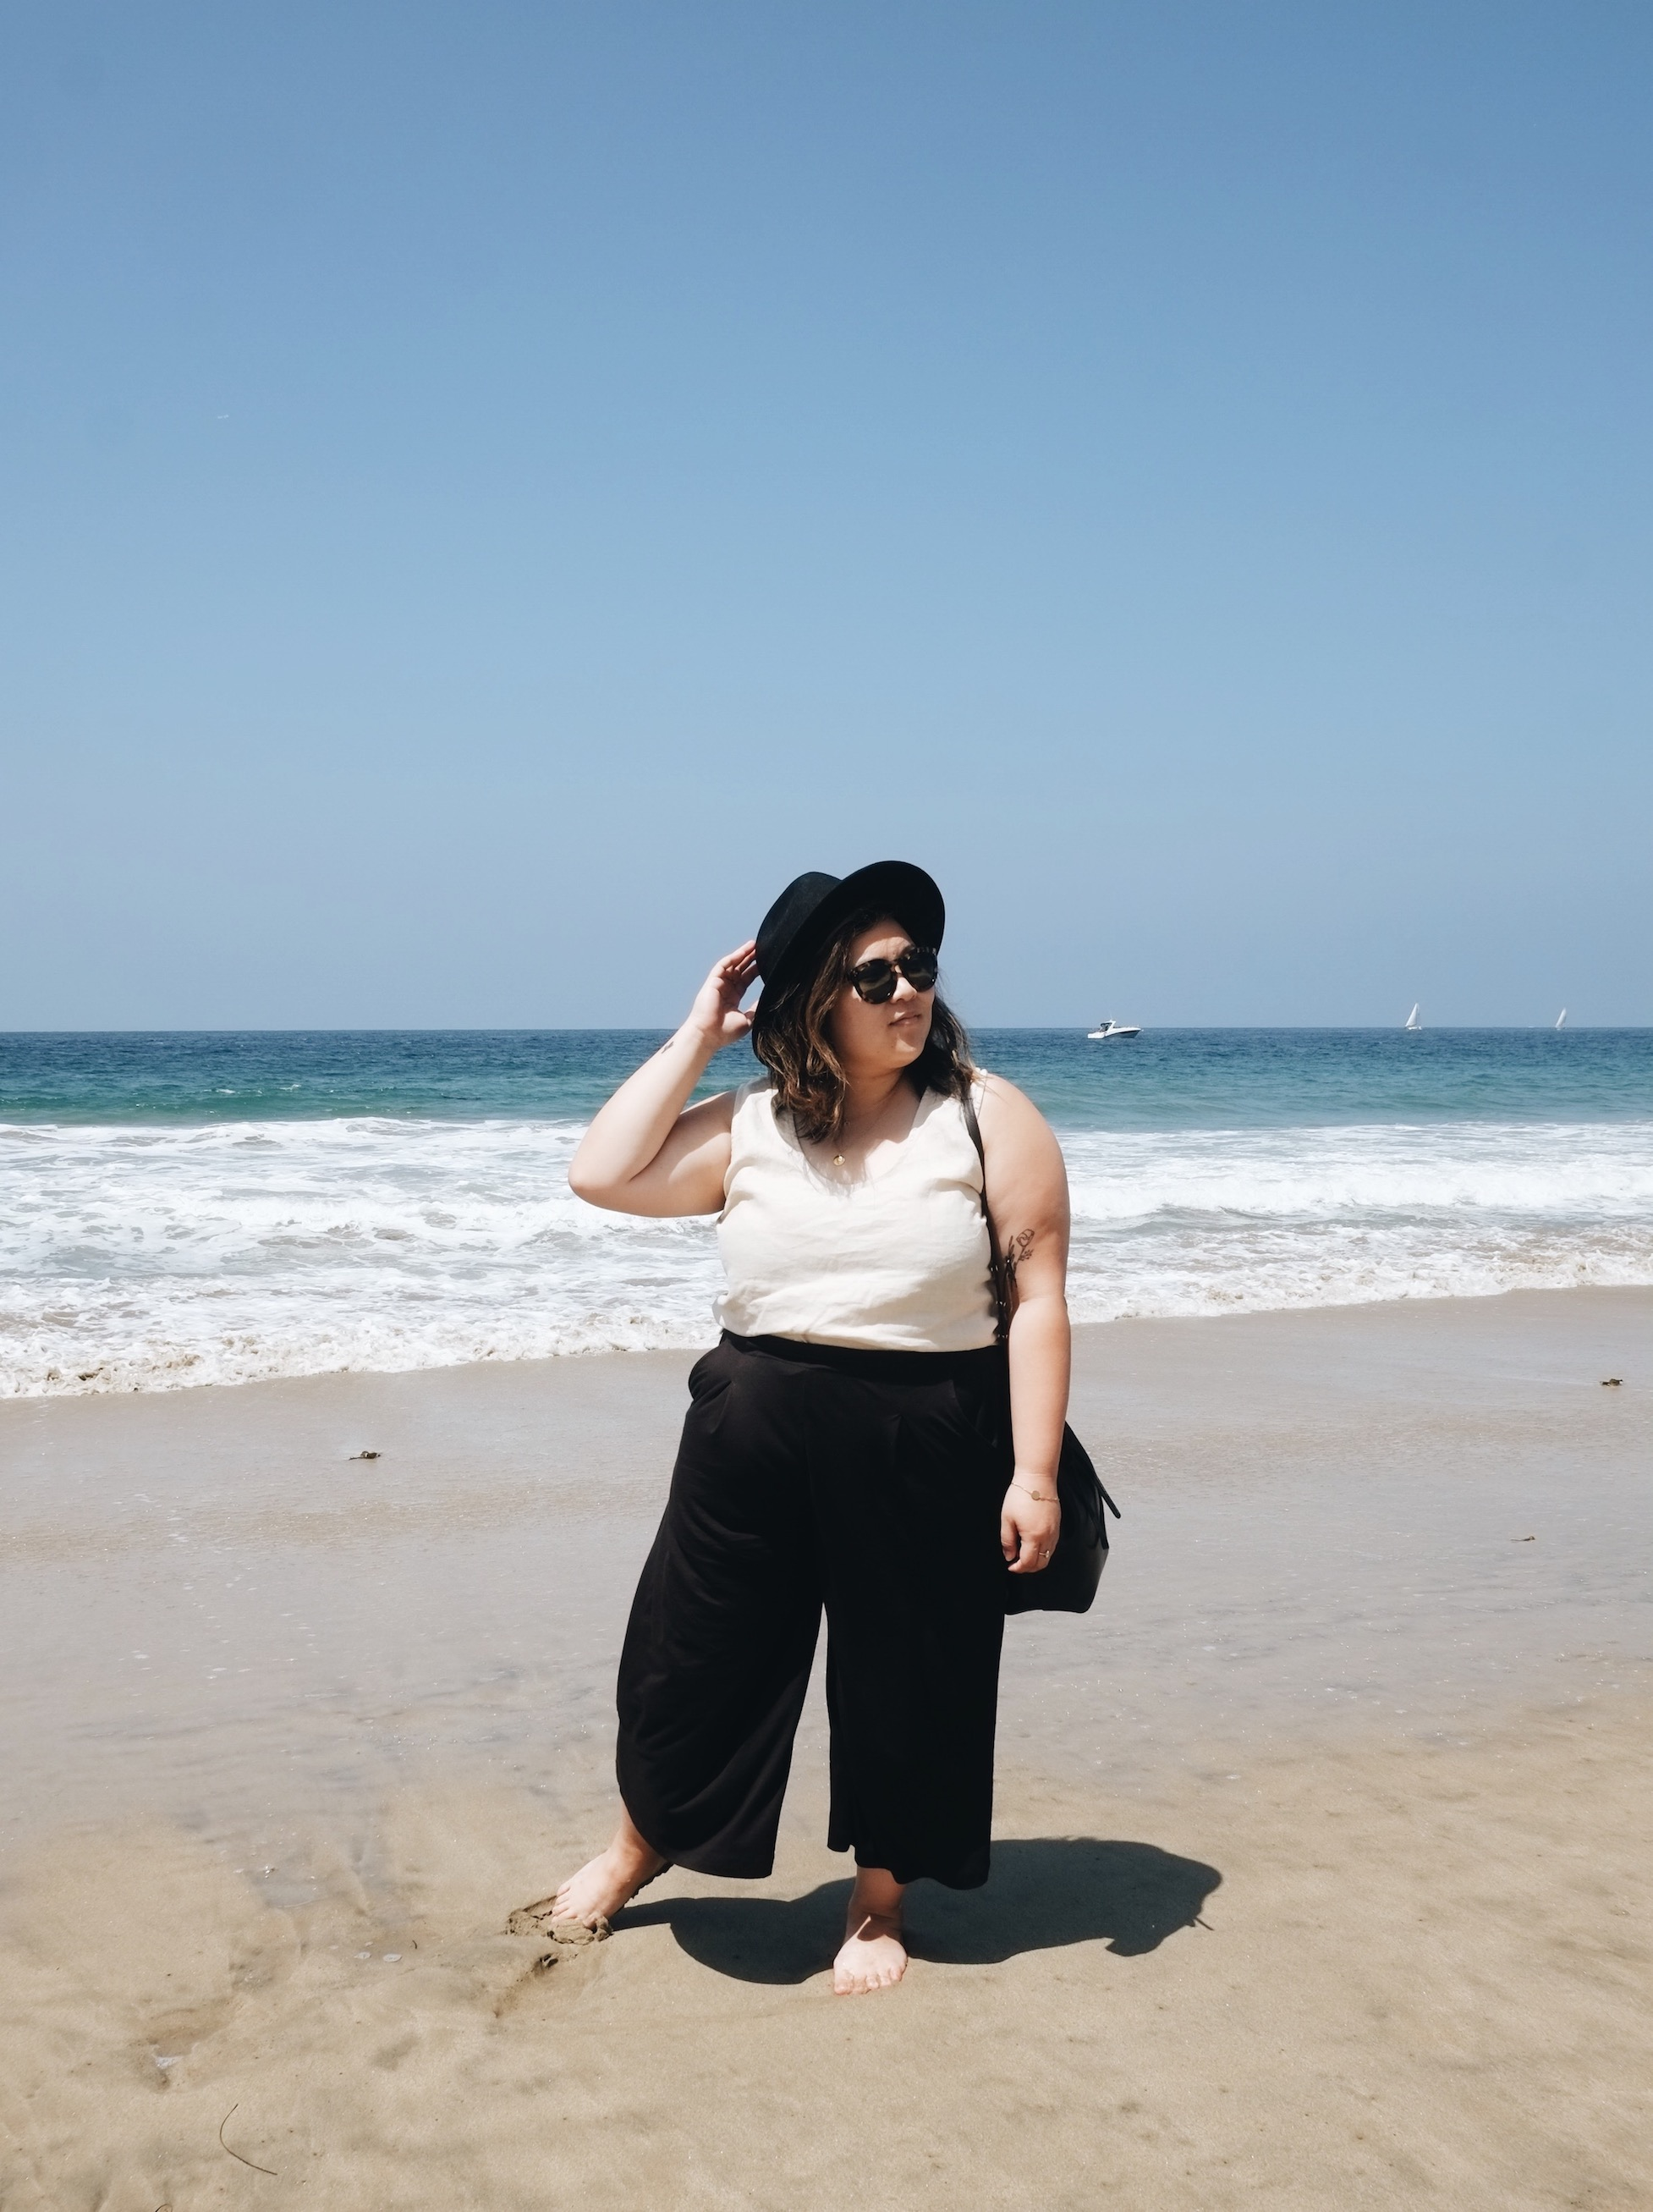 Minimalist beach outfit // A Week Of Minimalist Uniform Outfits With Jasmine Hwang From The Pleb Life on The Good Trade